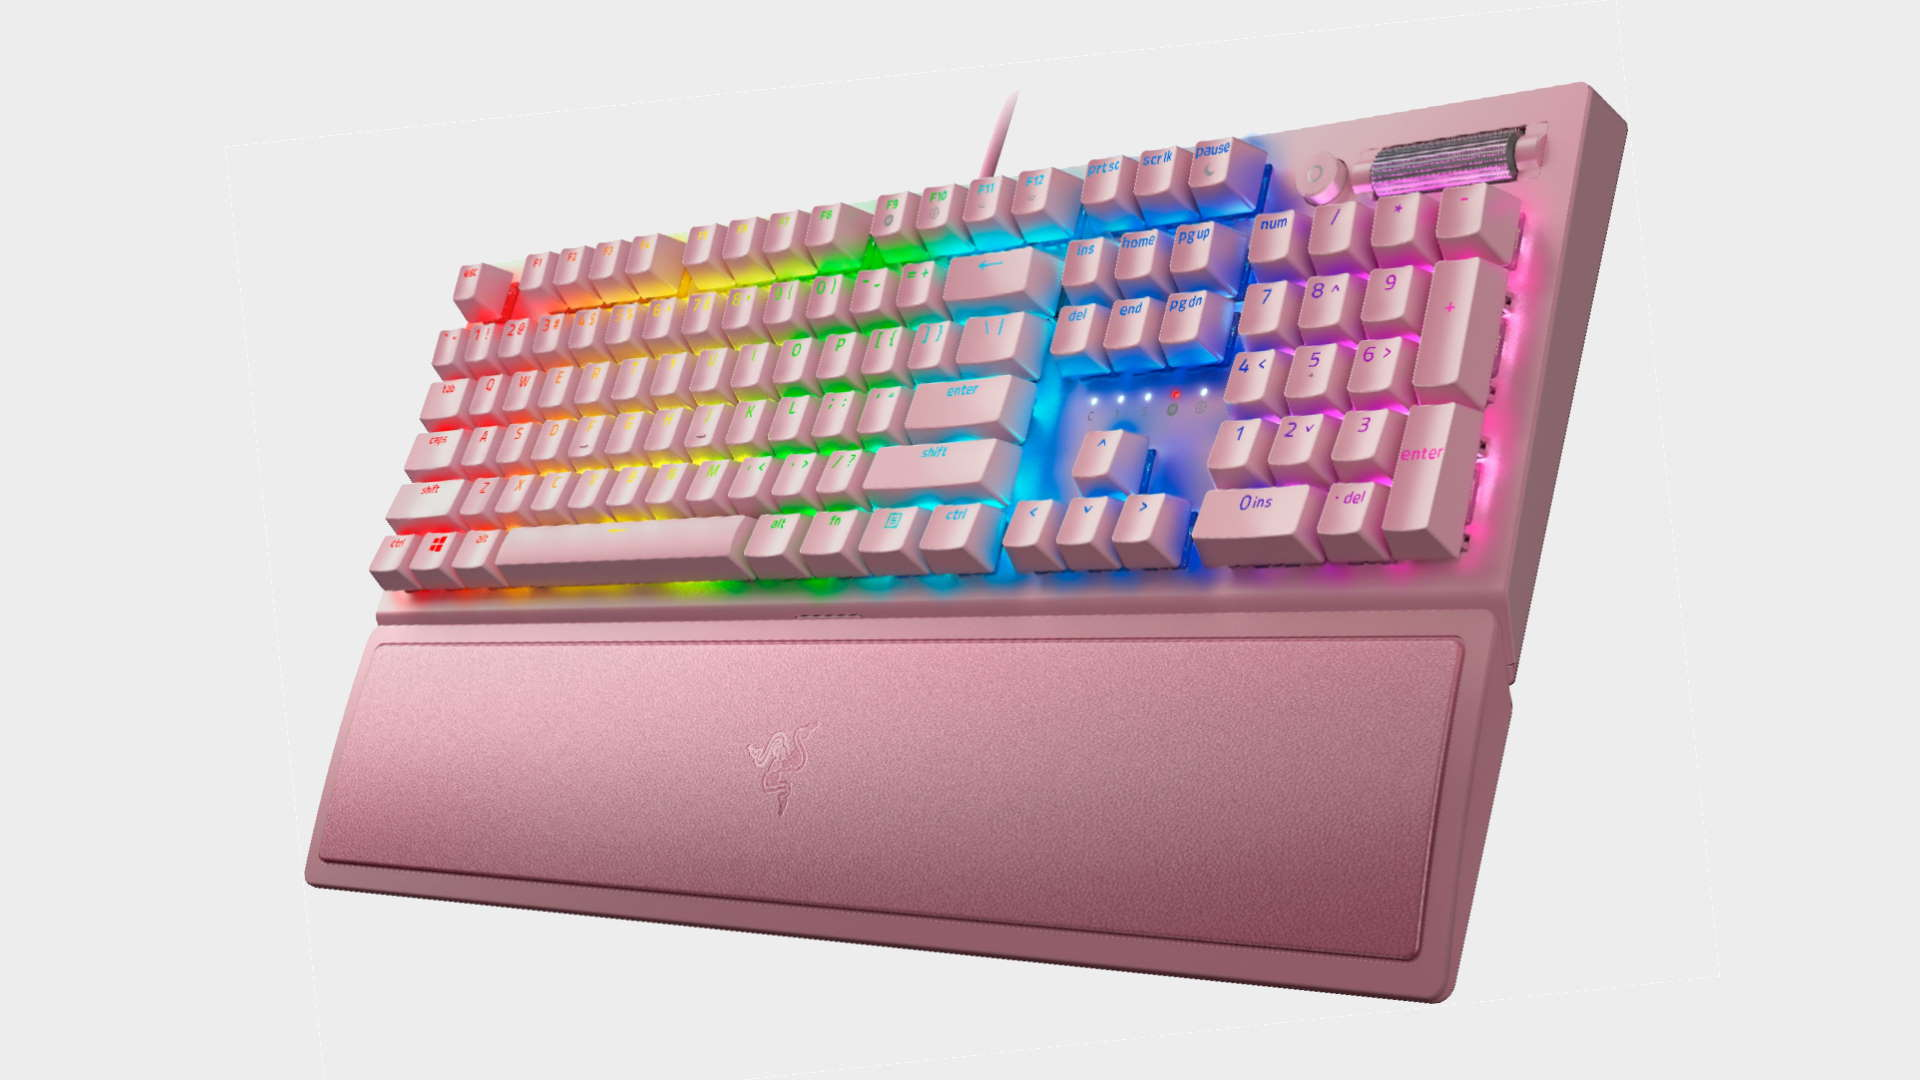 Razer's Blackwidow V3 gaming keyboard now comes in Quartz Pink